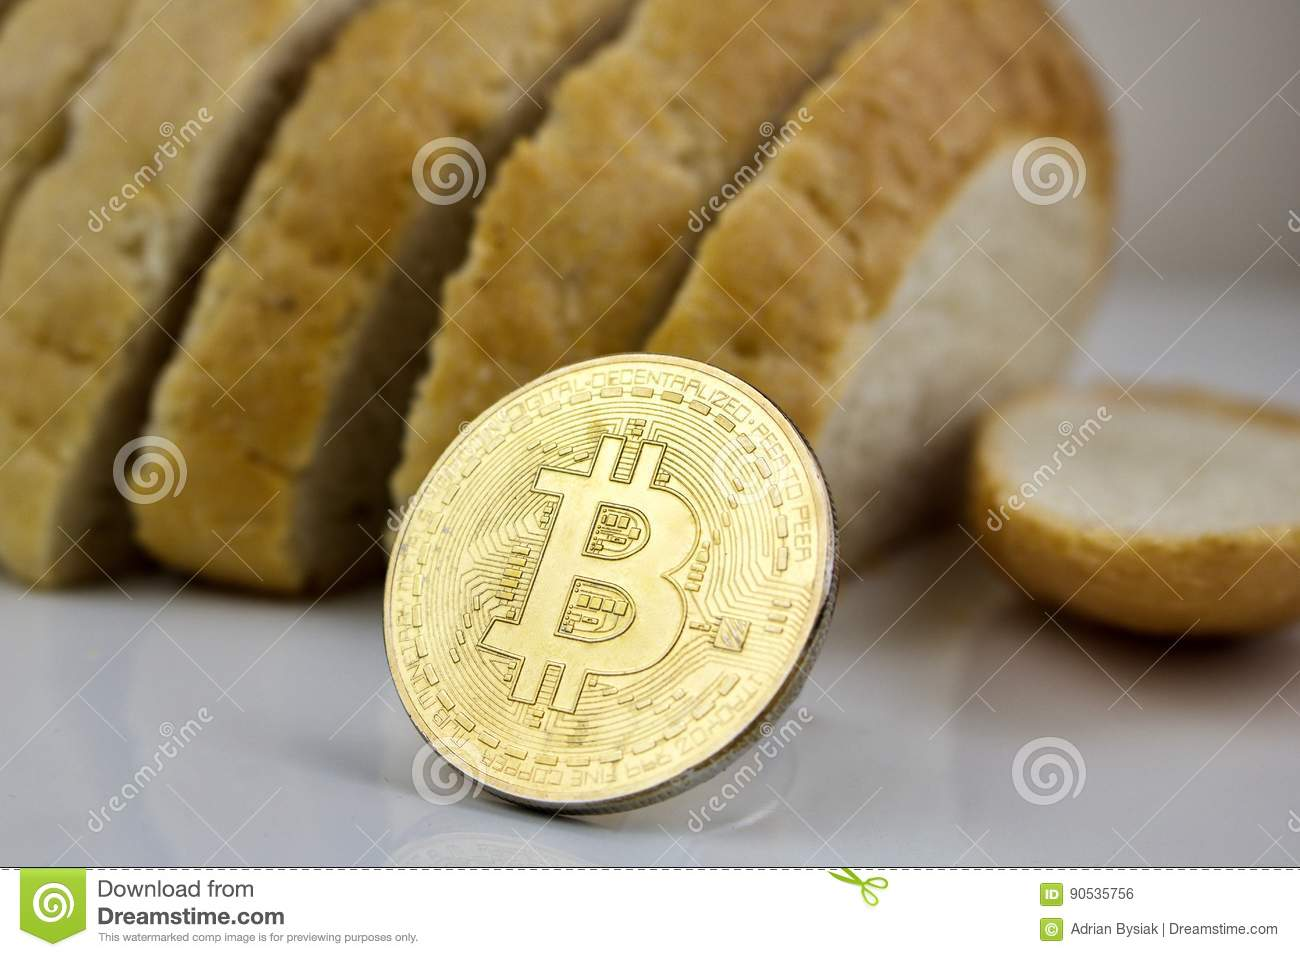 bread coin cryptocurrency